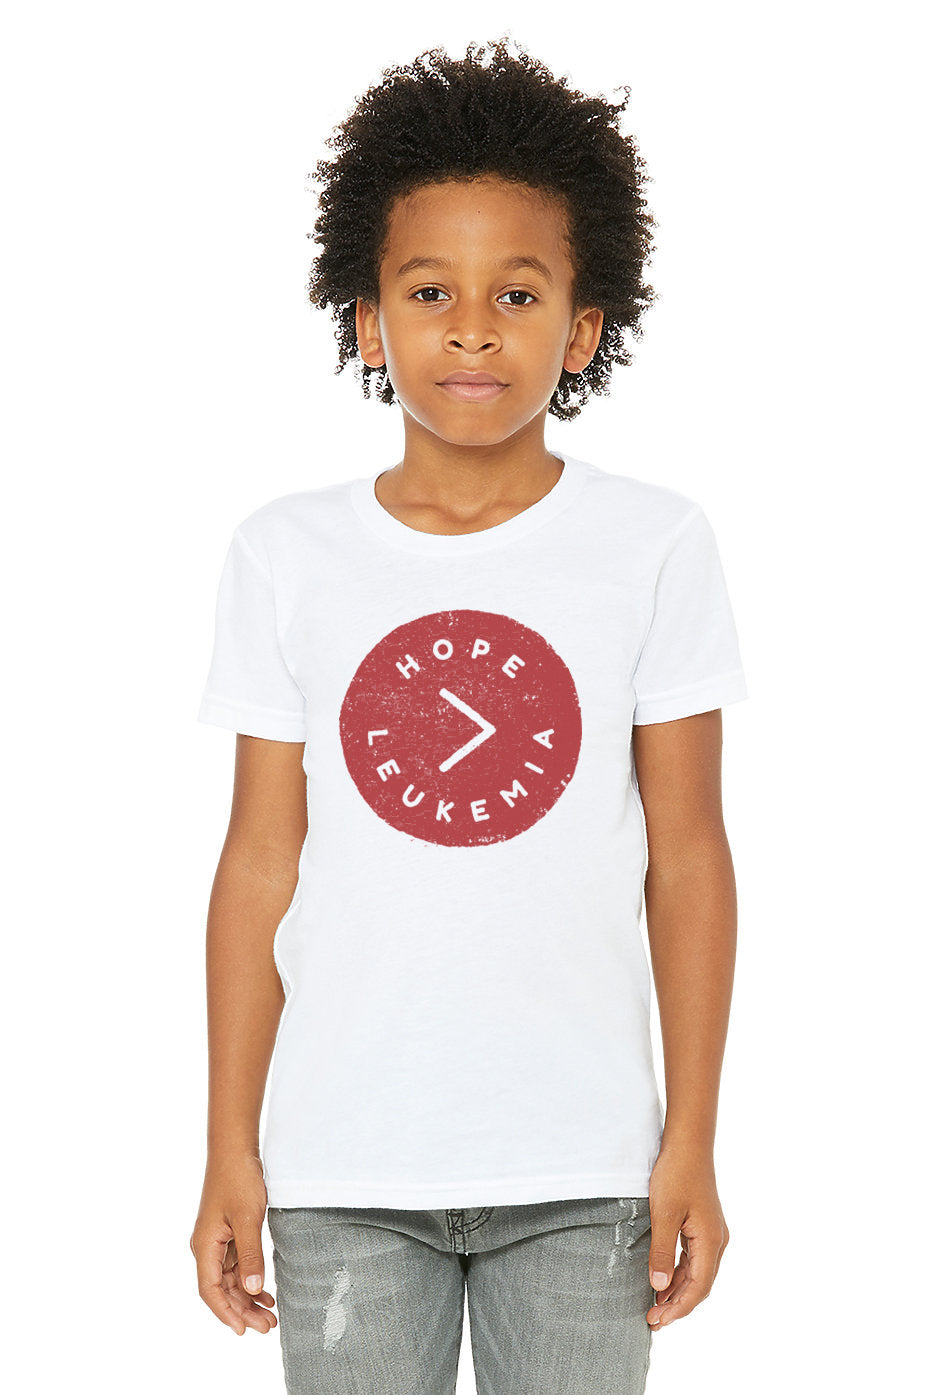 HOPE > LEUKEMIA PREMIUM CLASSIC TEE FOR THE FAMILY